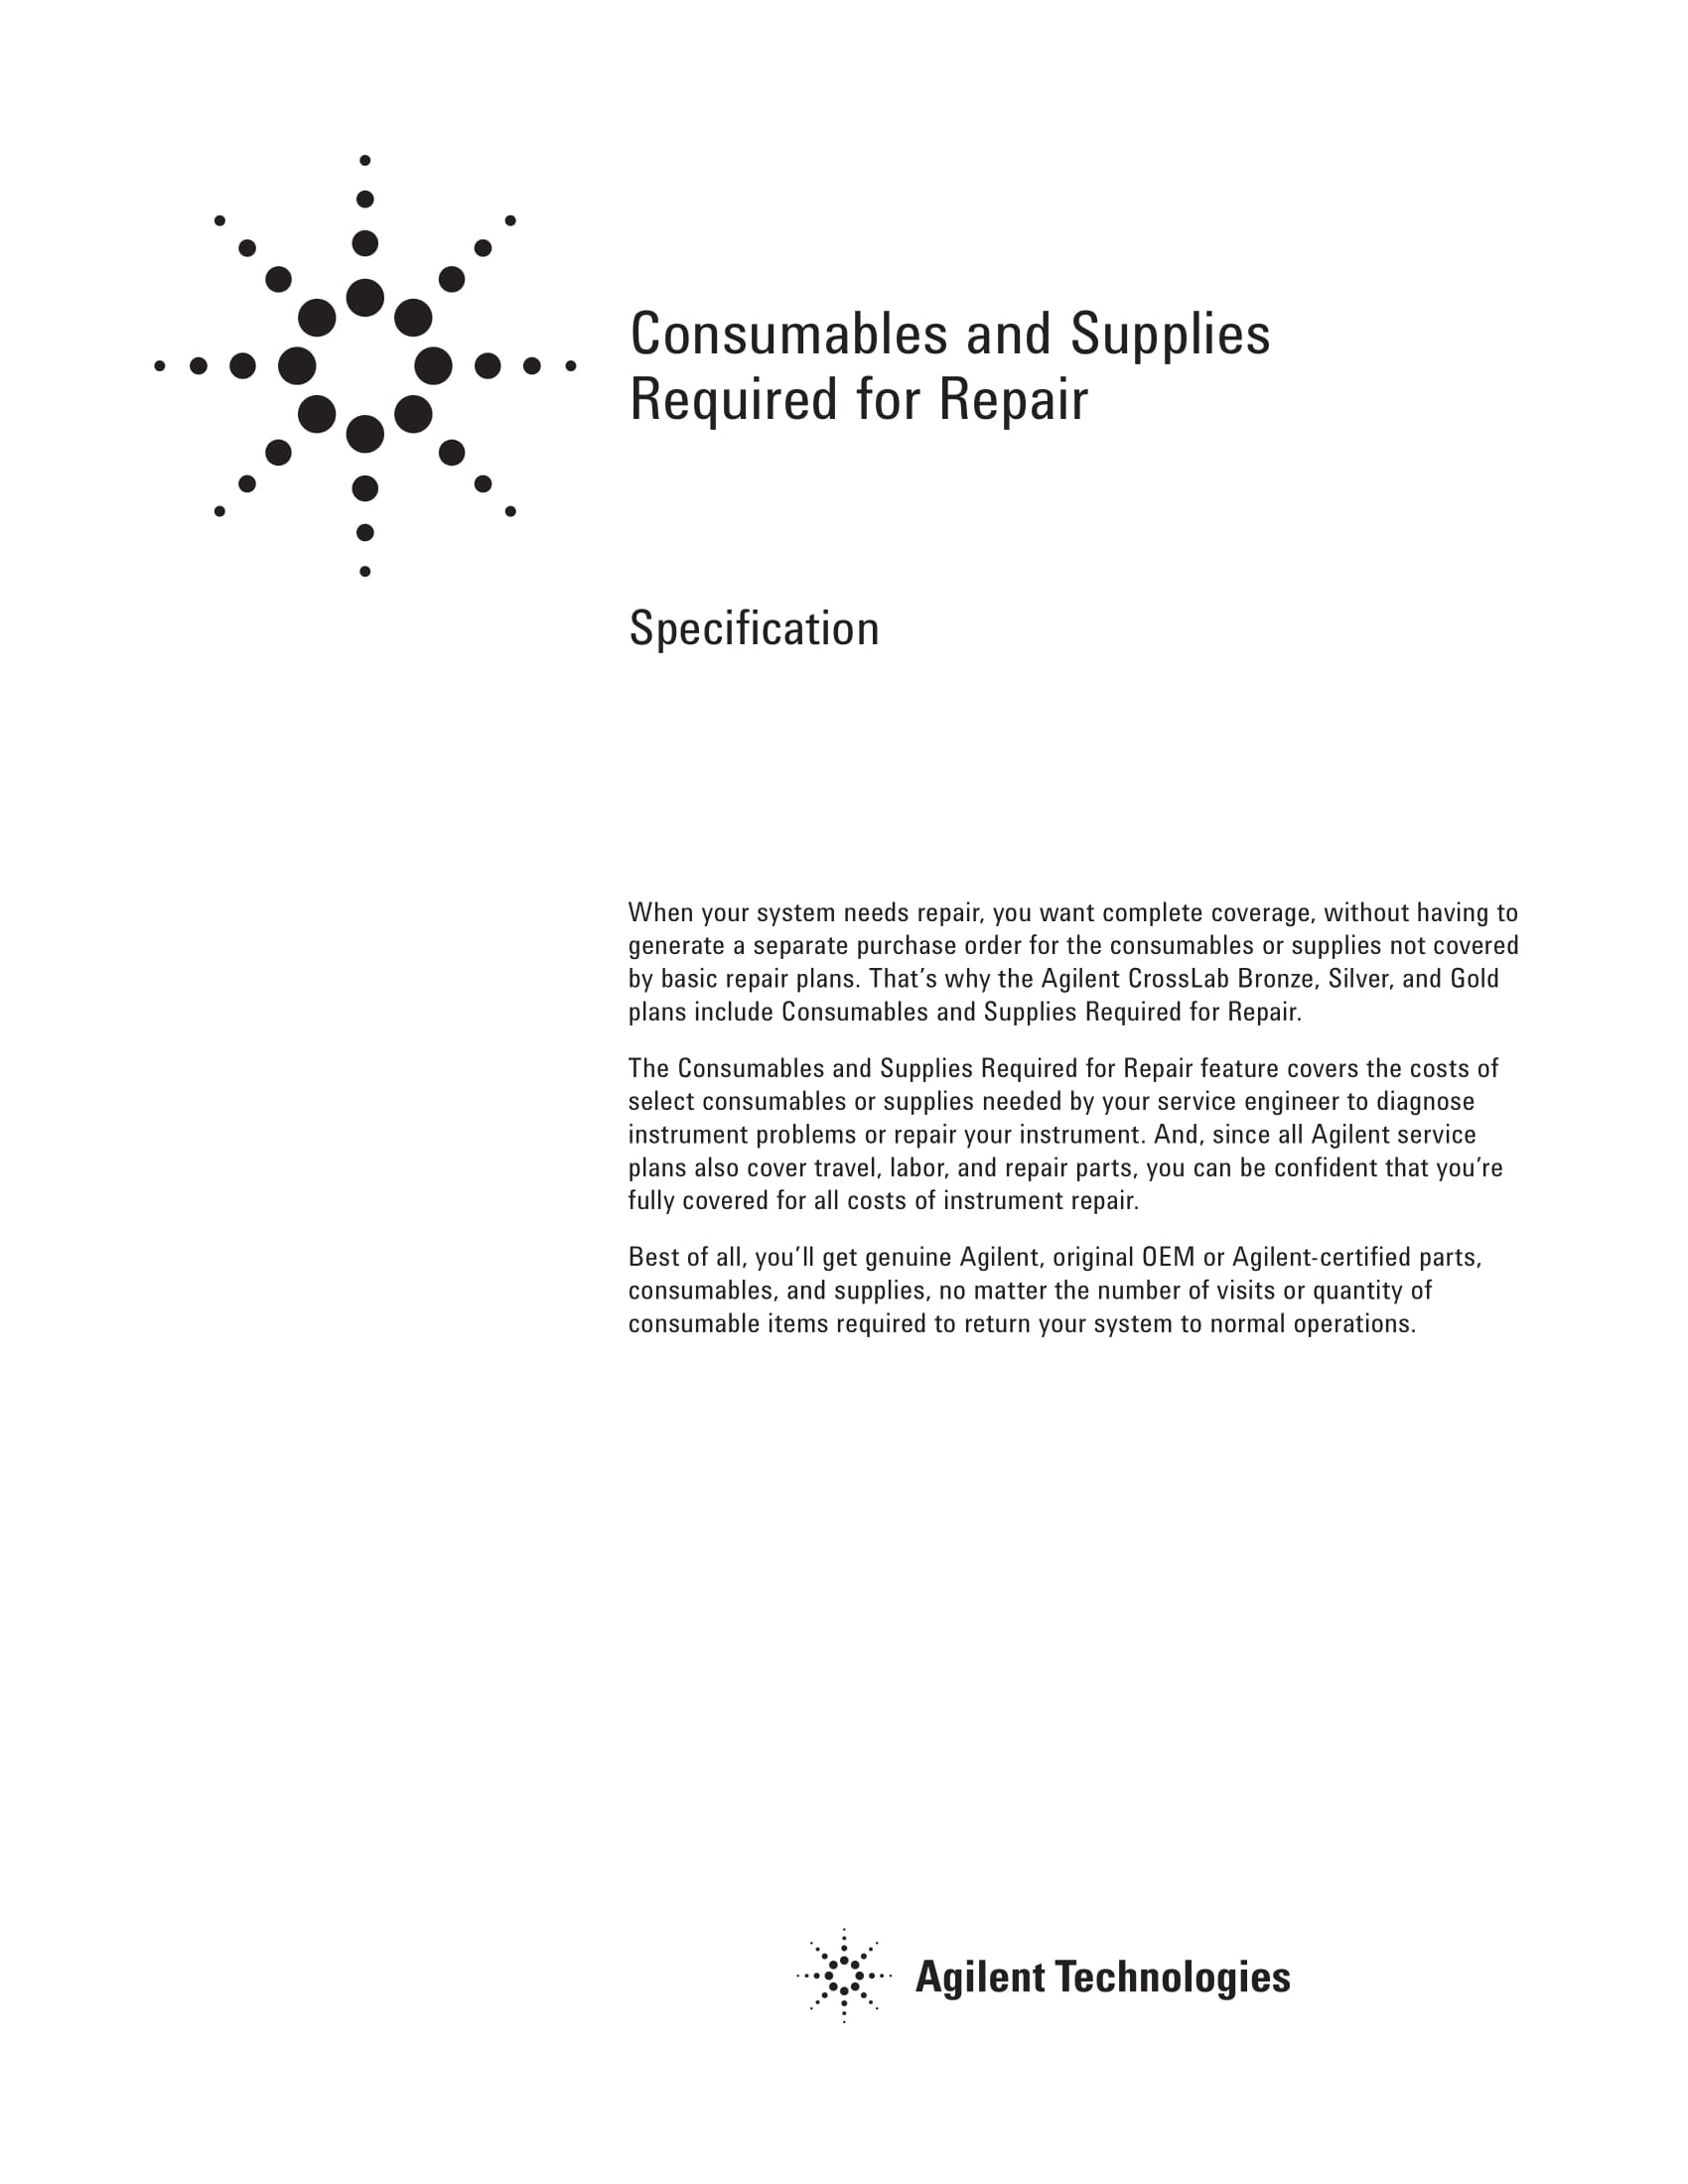 consumables and supplies required for repair example 1